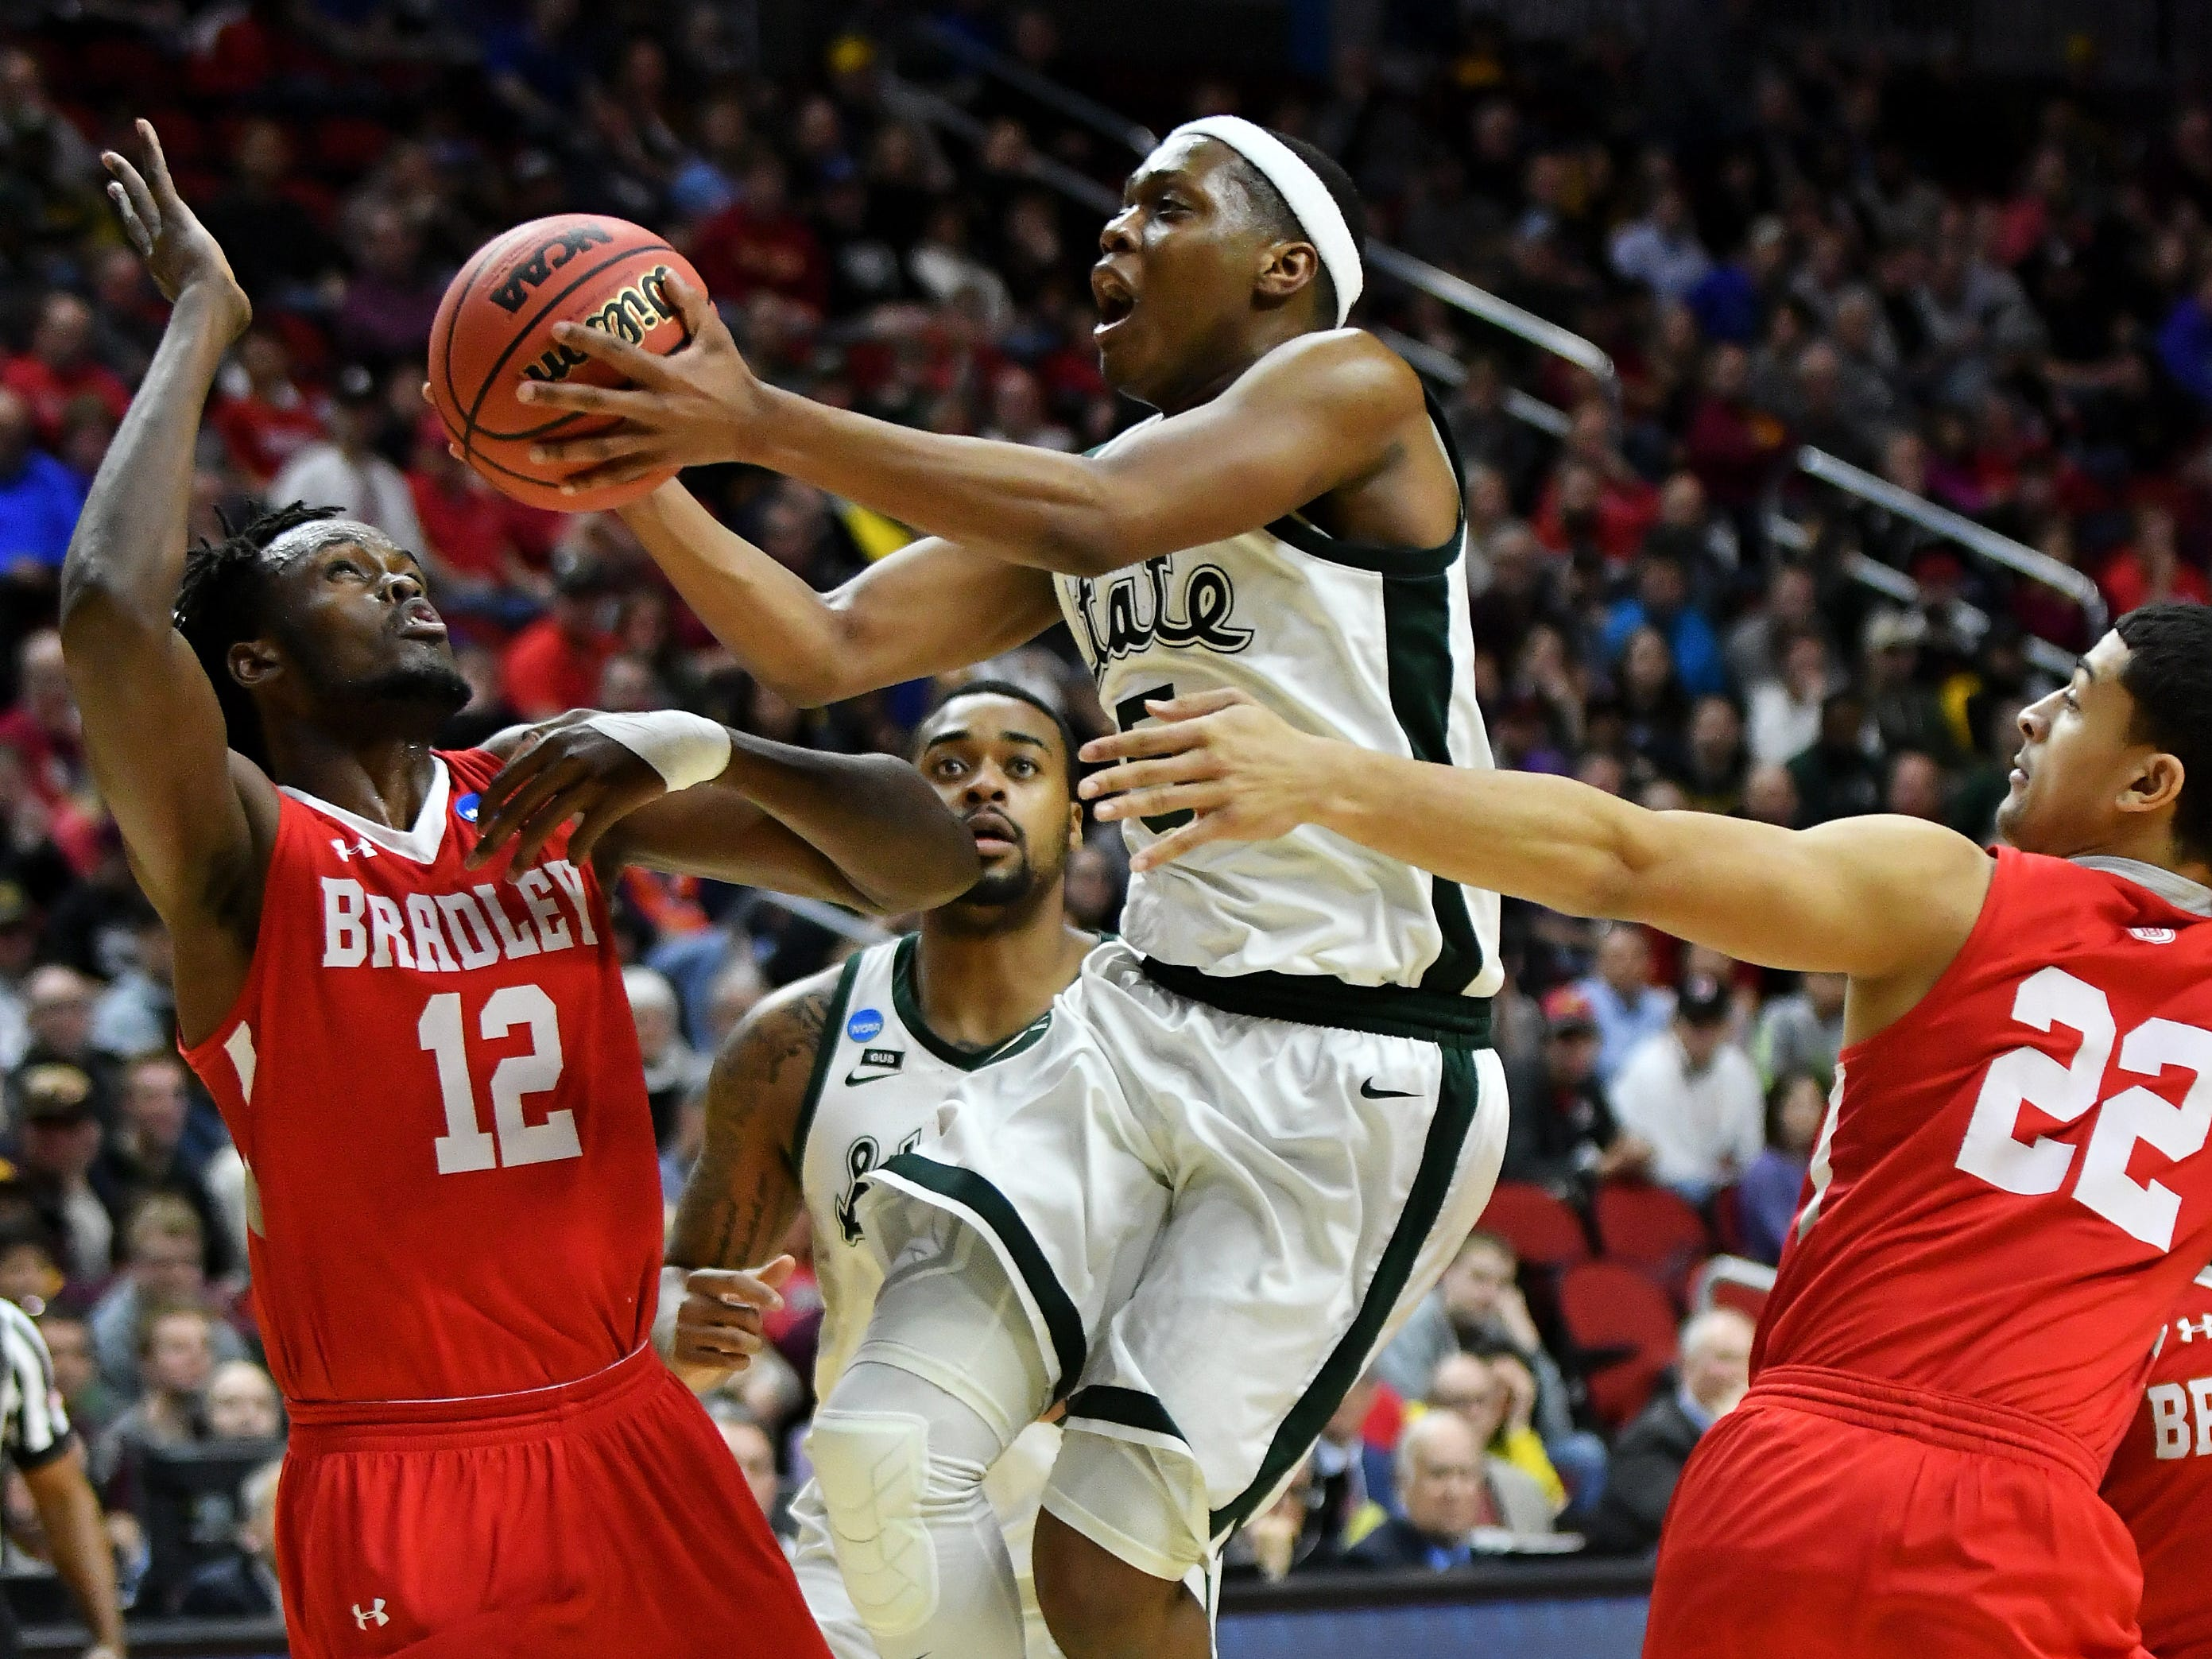 Bradley center Koch Bar (12) and Ja'Shon Henry (22)  defend a drive by Michigan State guard Cassius Winston (5)  in the second half.